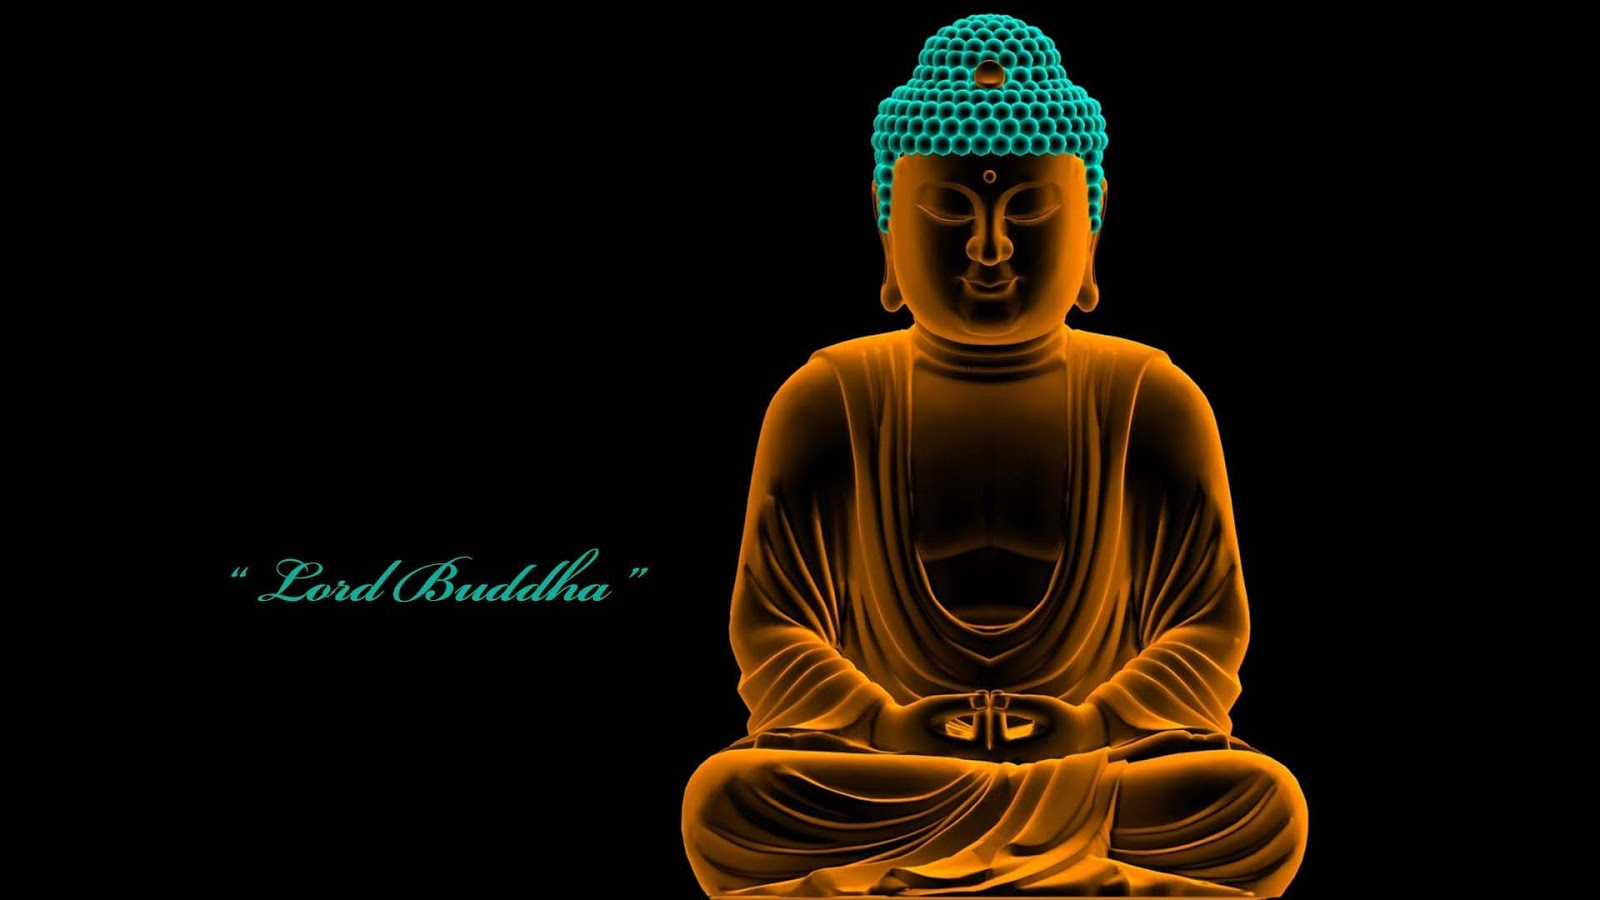 Wonderful Wallpaper Lord Amazing - Lord-Buddha-best-resolution  Image_433354.jpg